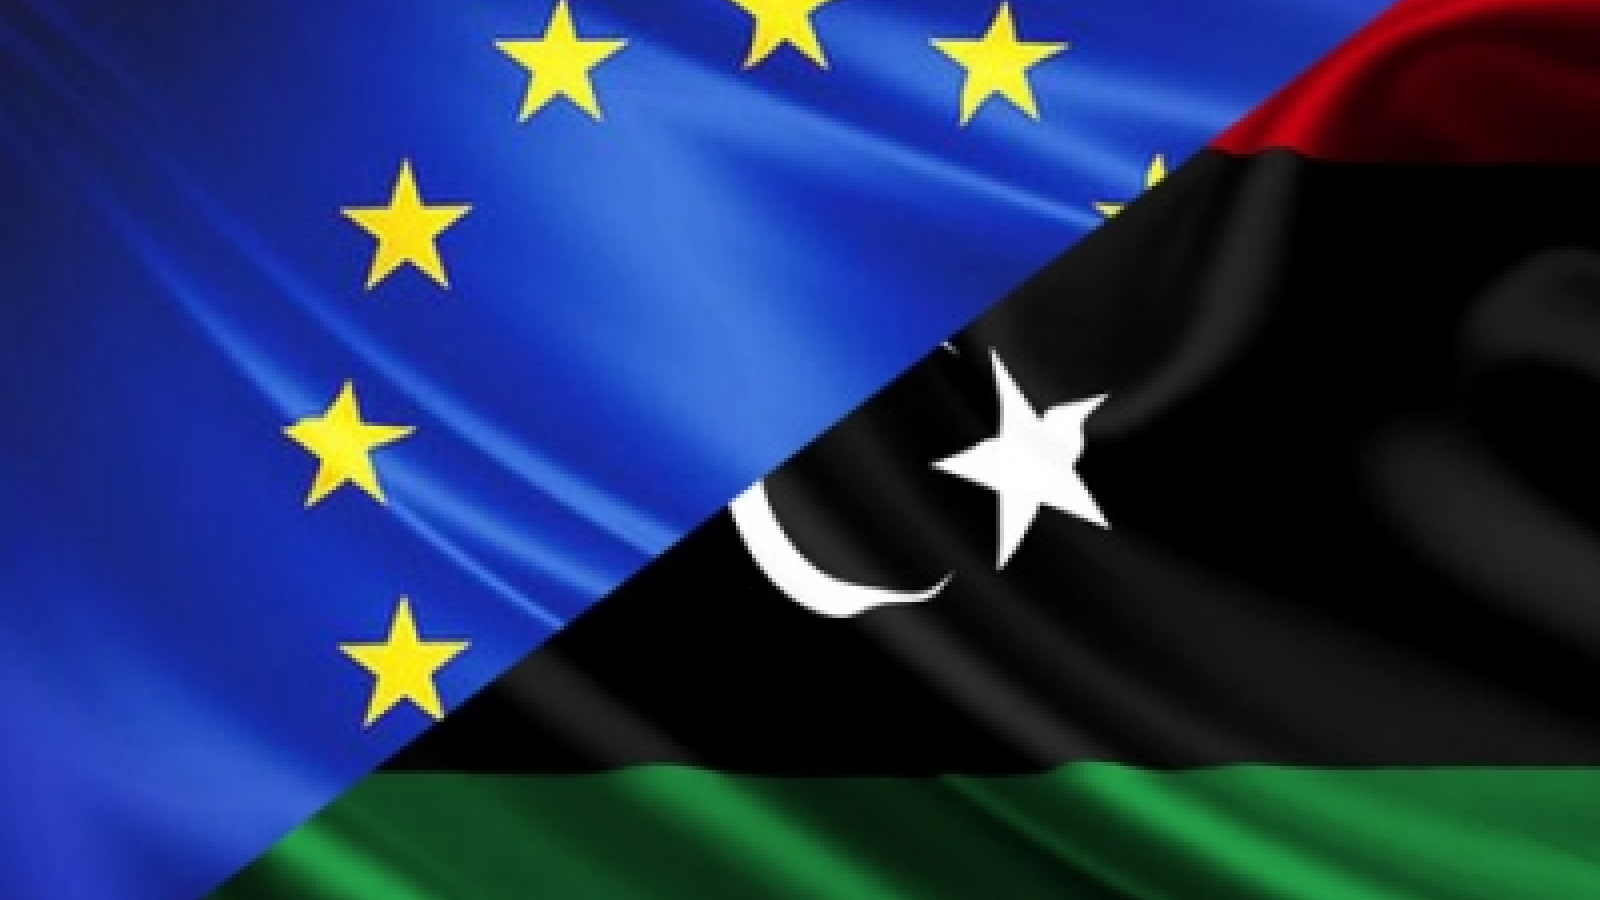 Libya: EU Ministers agree to launch new Mediterranean Sea operation to implement arms embargo